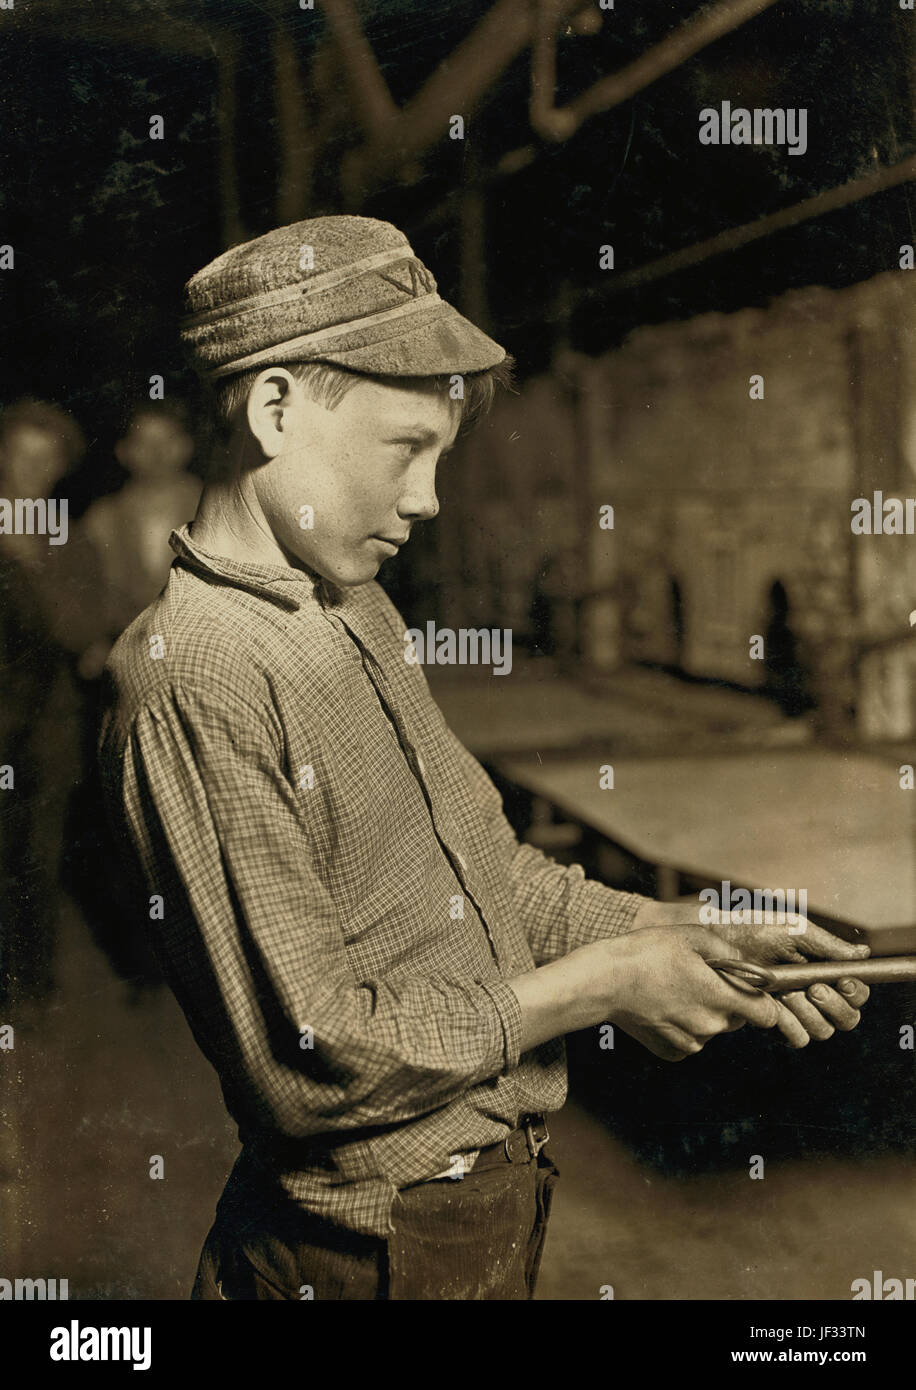 Title: Carrying-in Boy at the Lehr, (15 years old) Glass Works, Grafton, W. Va. Has worked for several years. Works - Stock Image